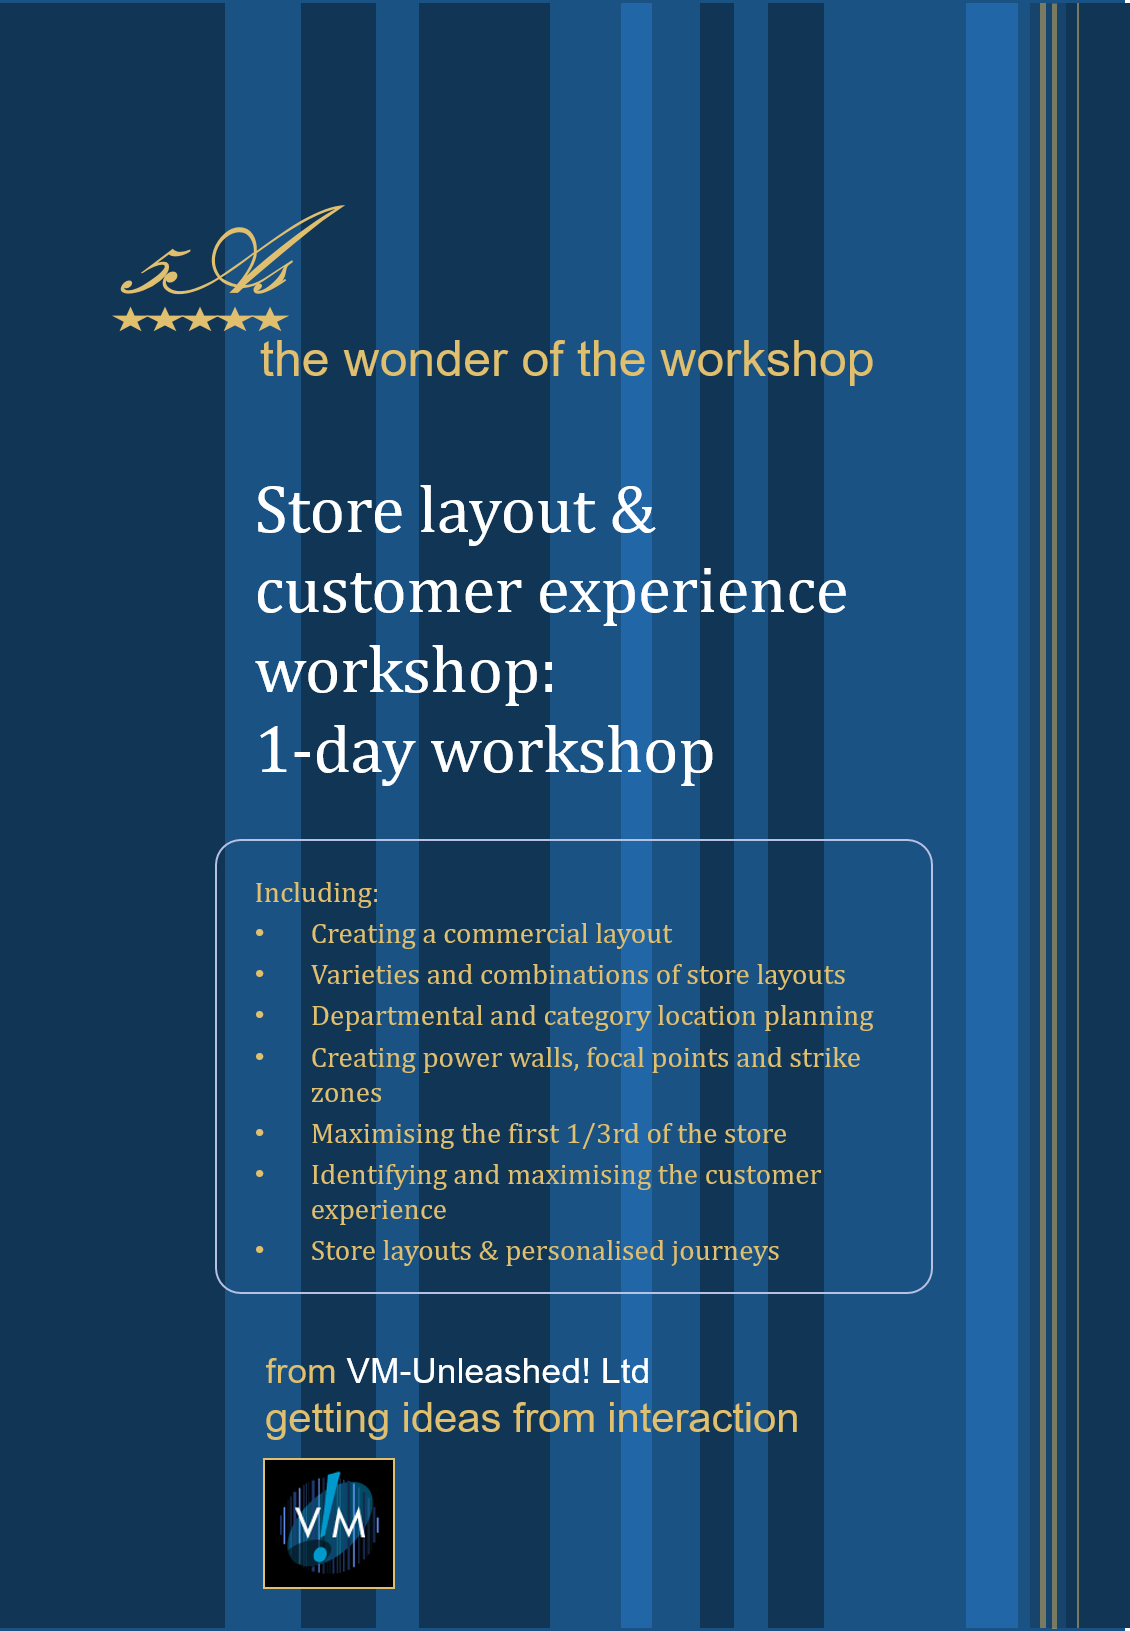 vm-unleashed-workshop-store-layout-customer-experience